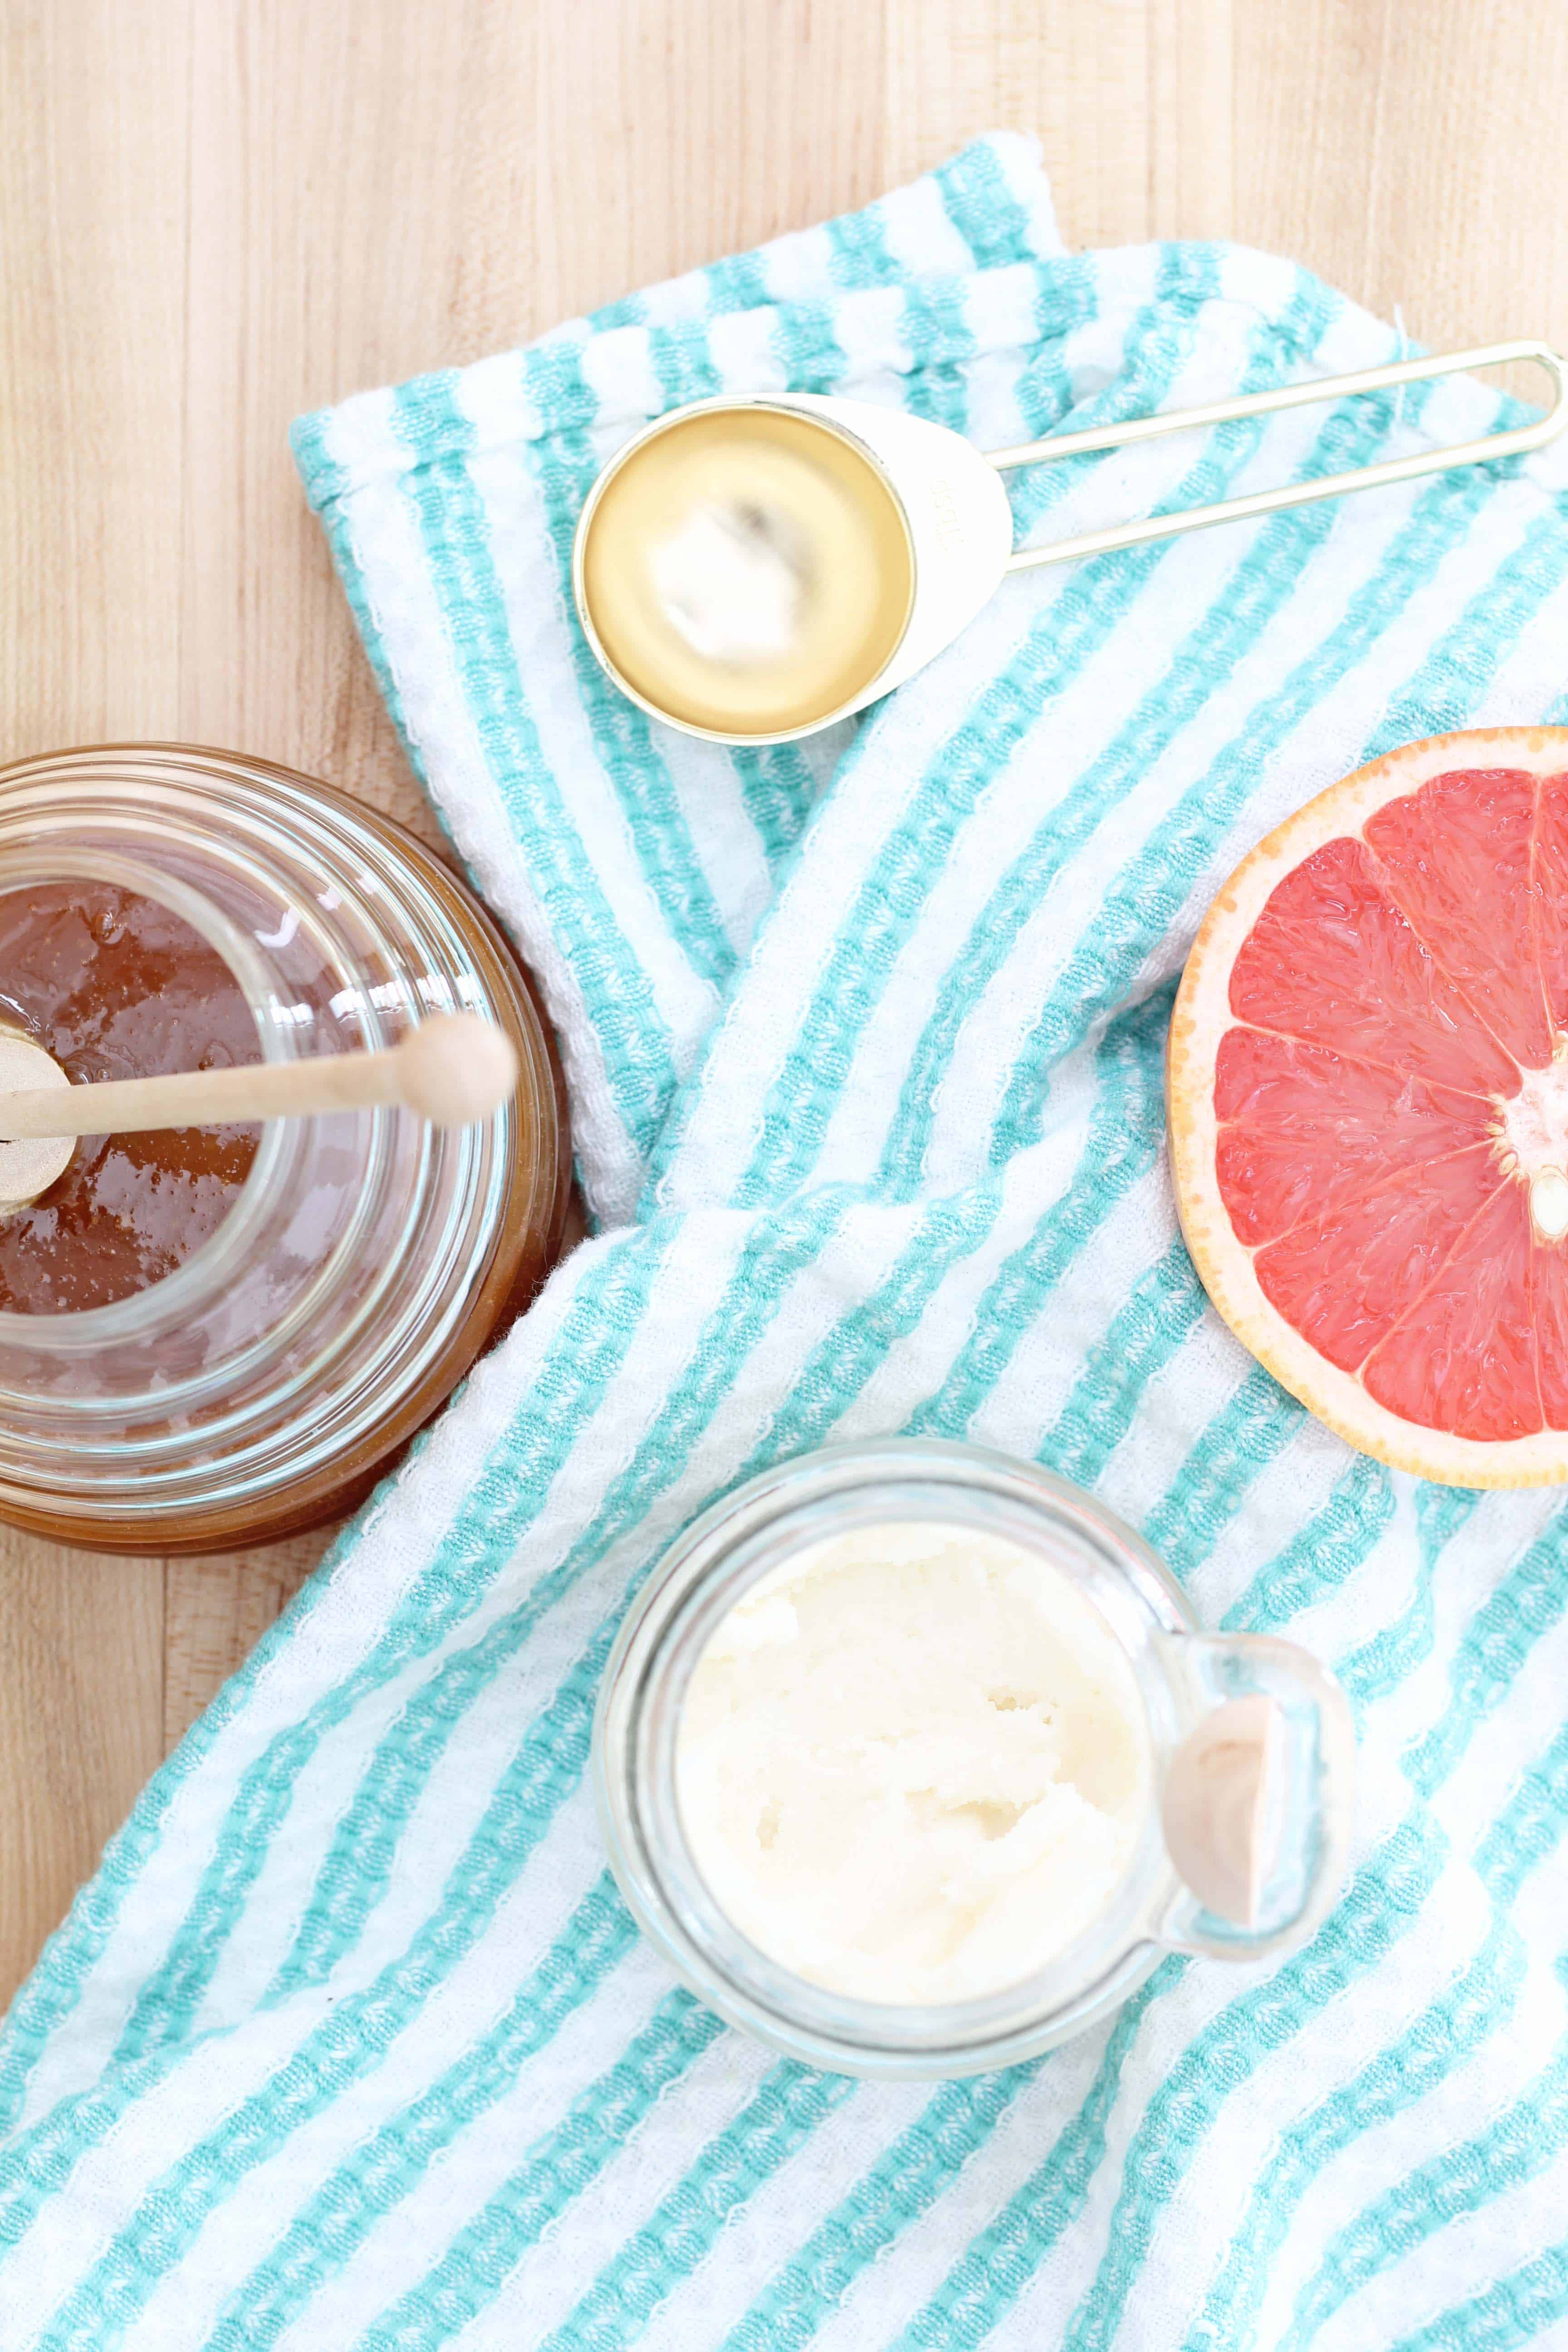 grapefruit, honey is glass beehive jar, gold measuring spoon, and apothecary jar